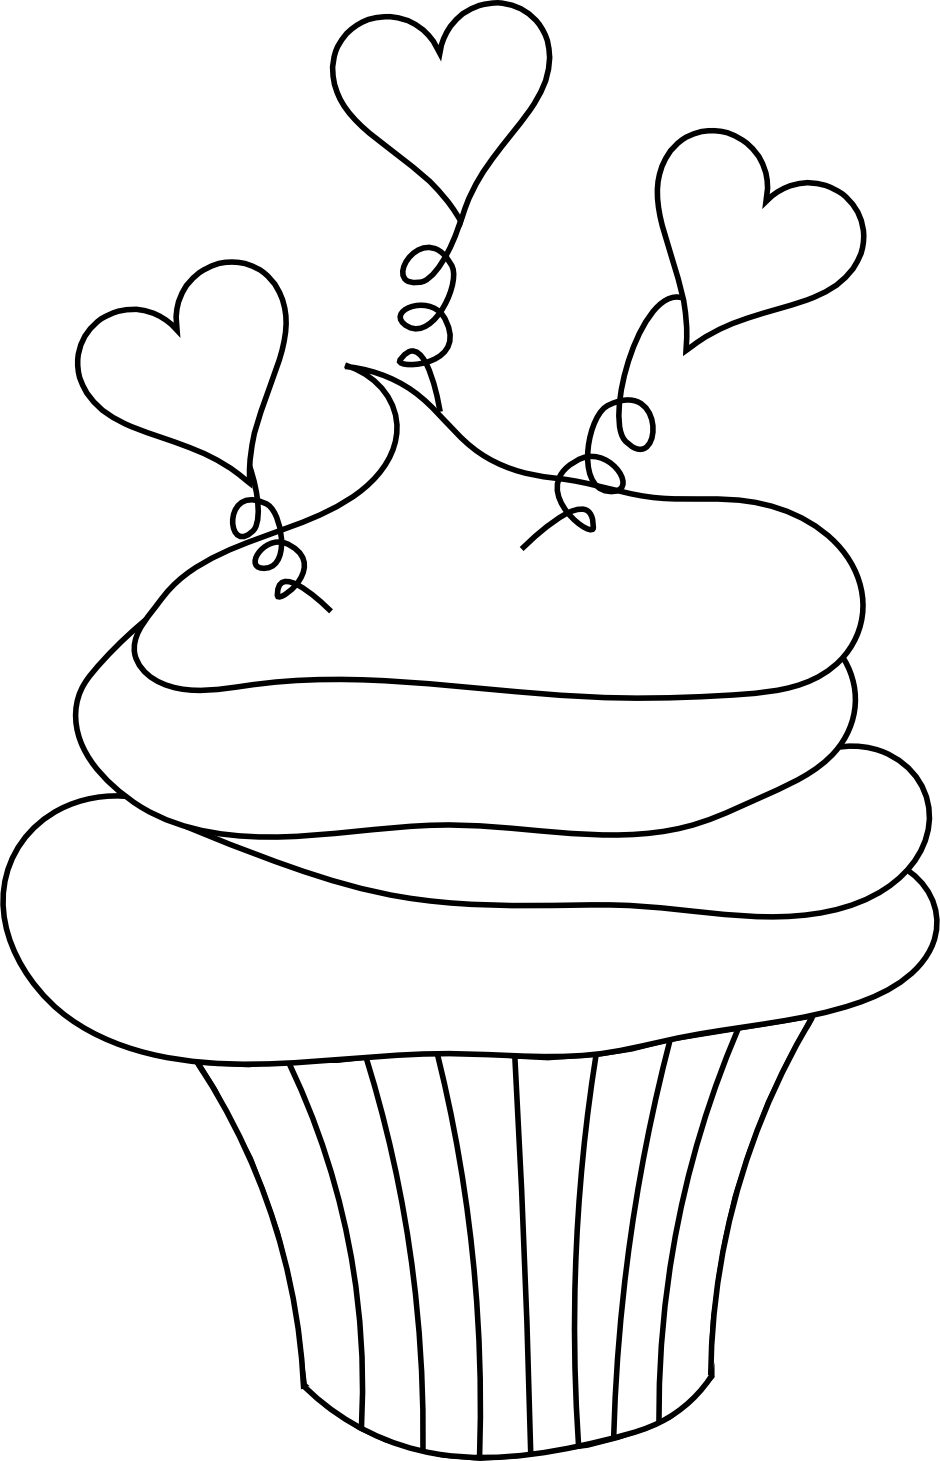 best cupcake clipart black and white 5210